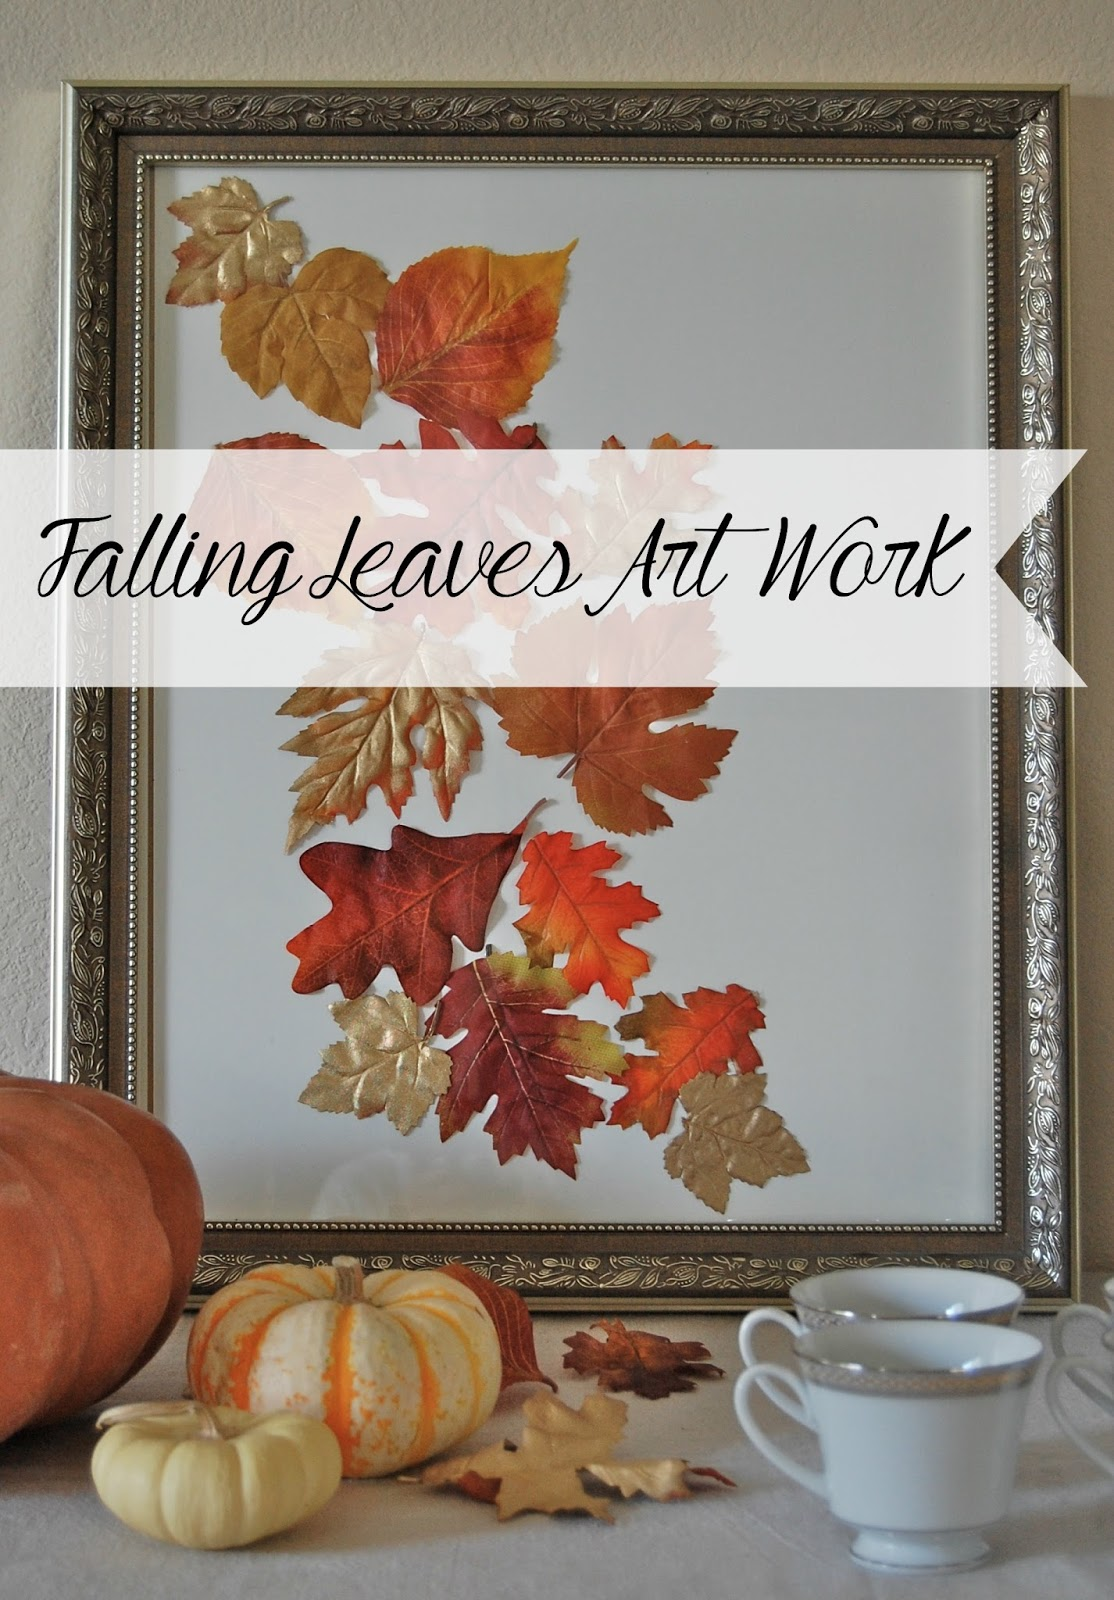 falling leaves art work @desertwillowlane